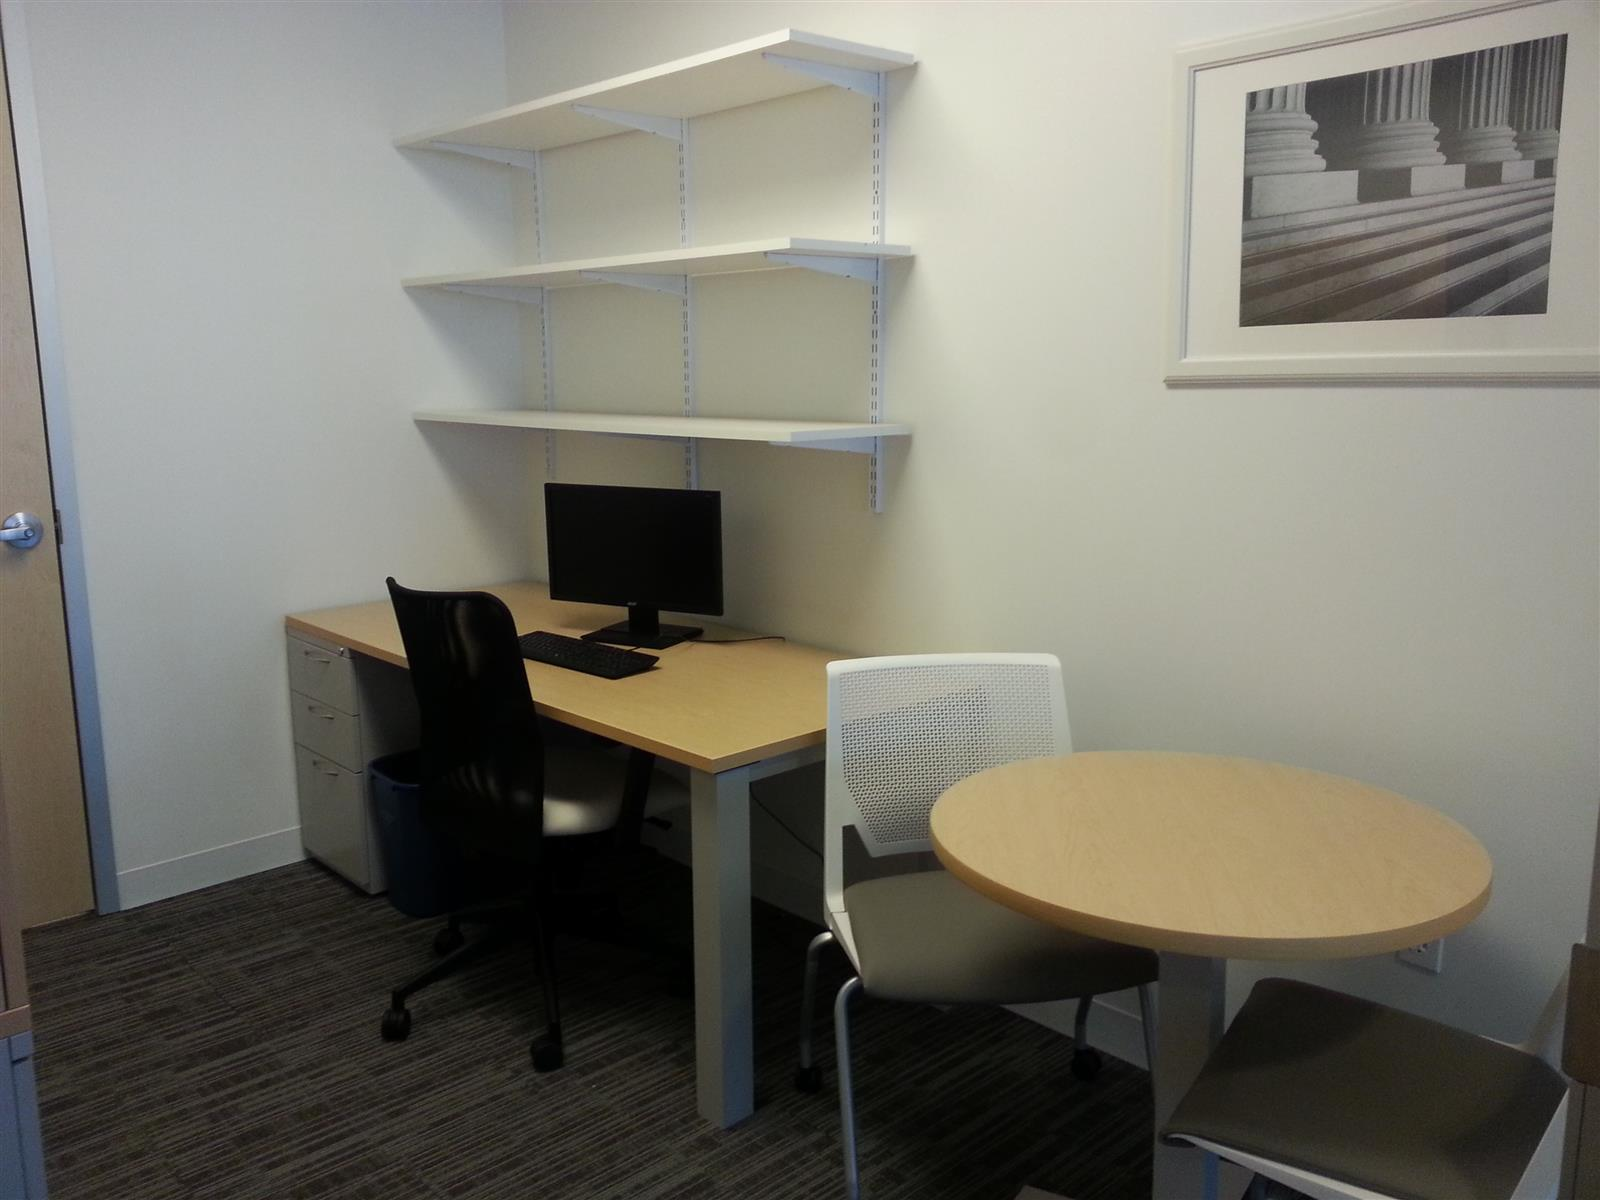 EC English Learning Centre - Washington, DC - Individual Office (1 person)